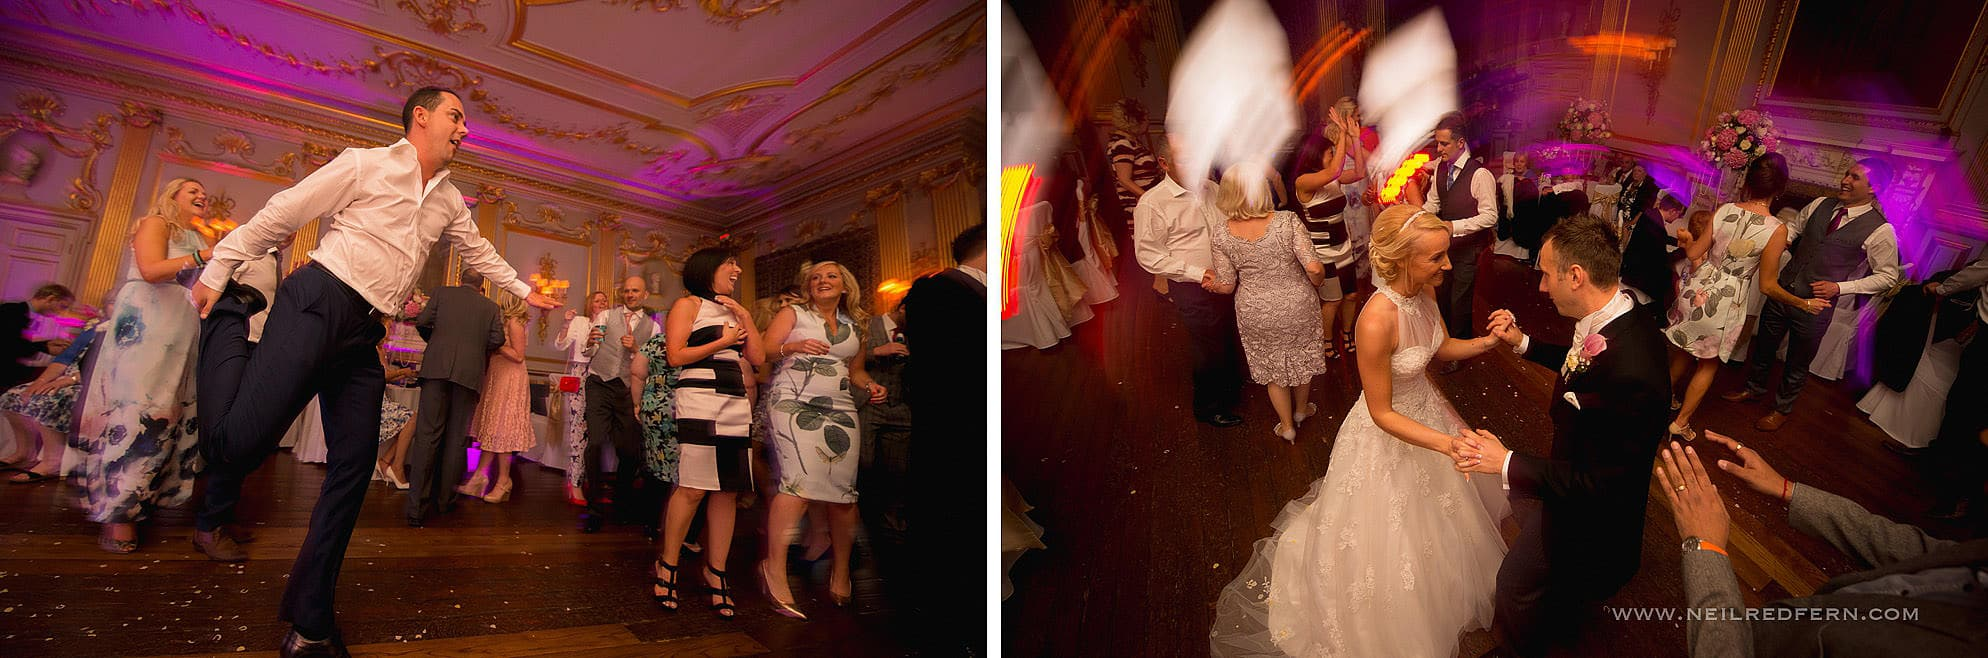 Knowsley Hall wedding photography 55